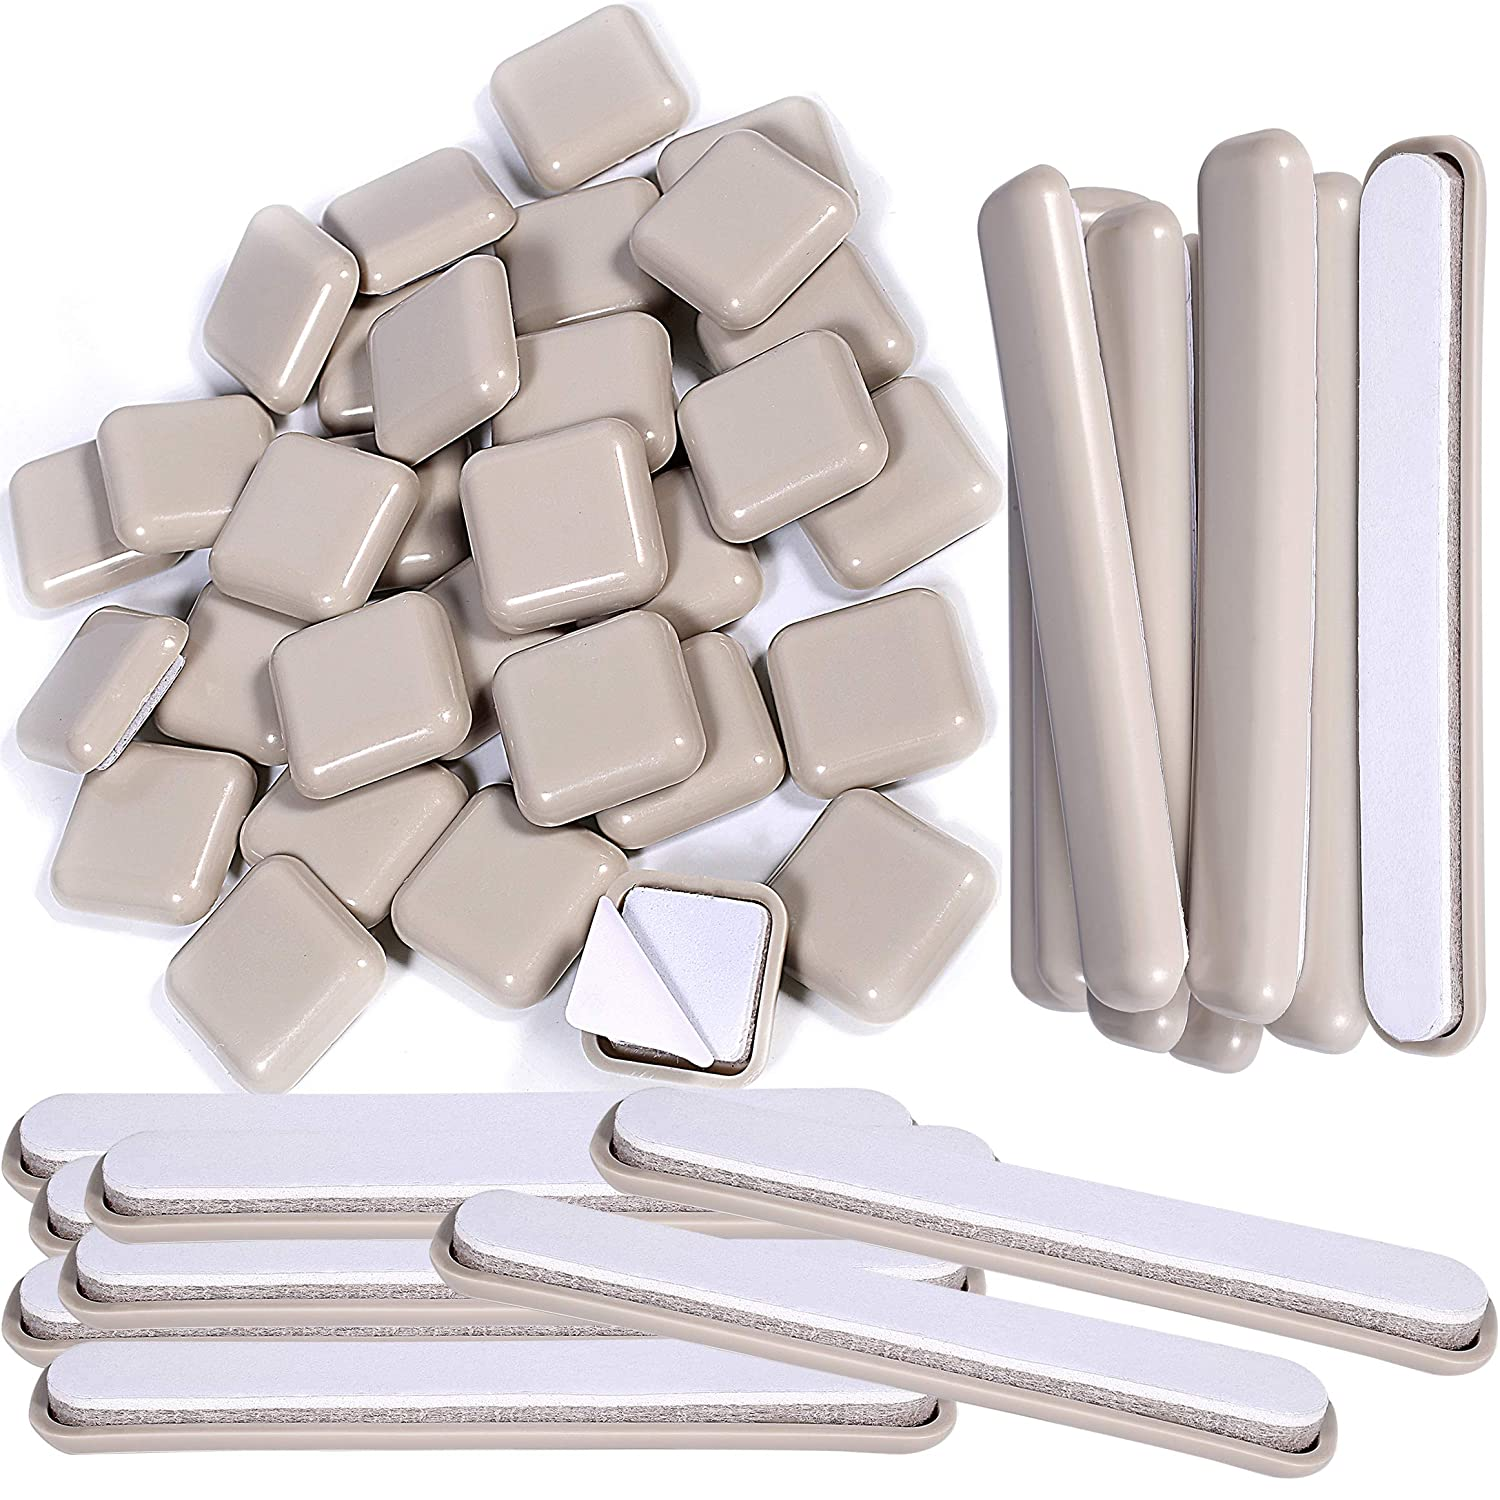 """Liyic 48 Combo Pack Self-Stick Carpet Gliders for Chair-32PCS 1inch Square Self Adhesive Furniture Glides&16PCS 1/2""""X4"""" Bar Furniture Moving Slider-Slider for Furniture-Carpet Slider-Furniture Slider"""